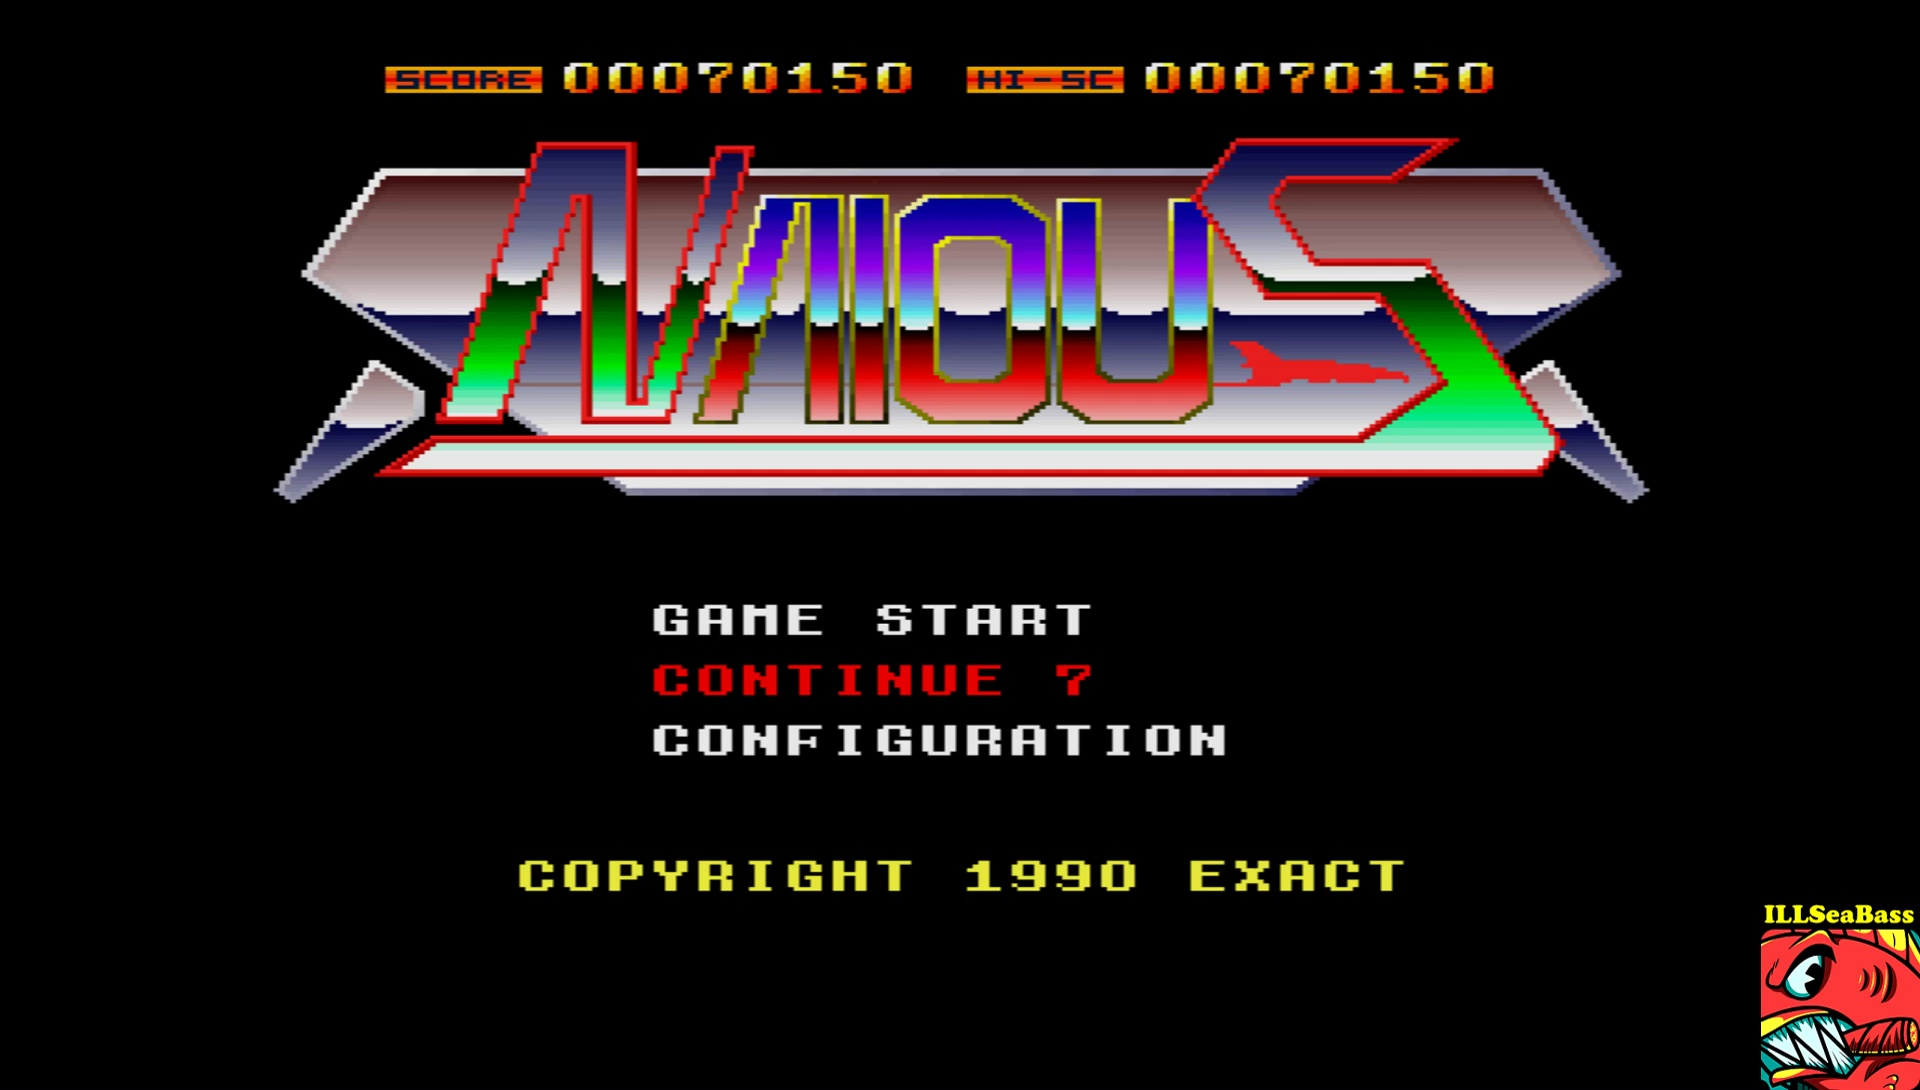 ILLSeaBass: Naious [Normal] (Sharp X68000 Emulated) 70,150 points on 2017-06-25 12:41:26